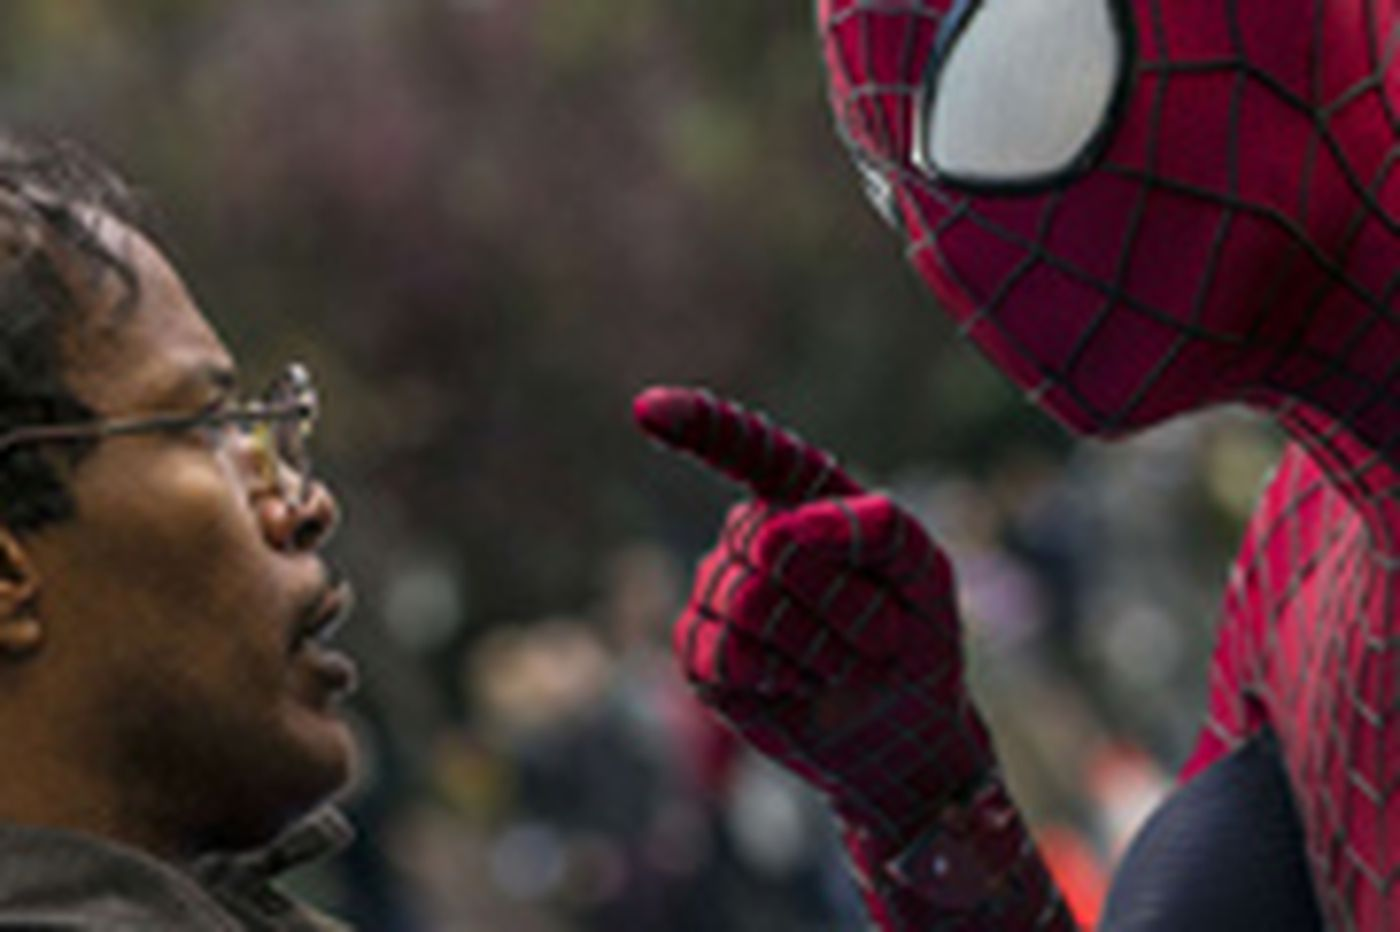 Sideshow: 'Spider-Man' takes the weekend